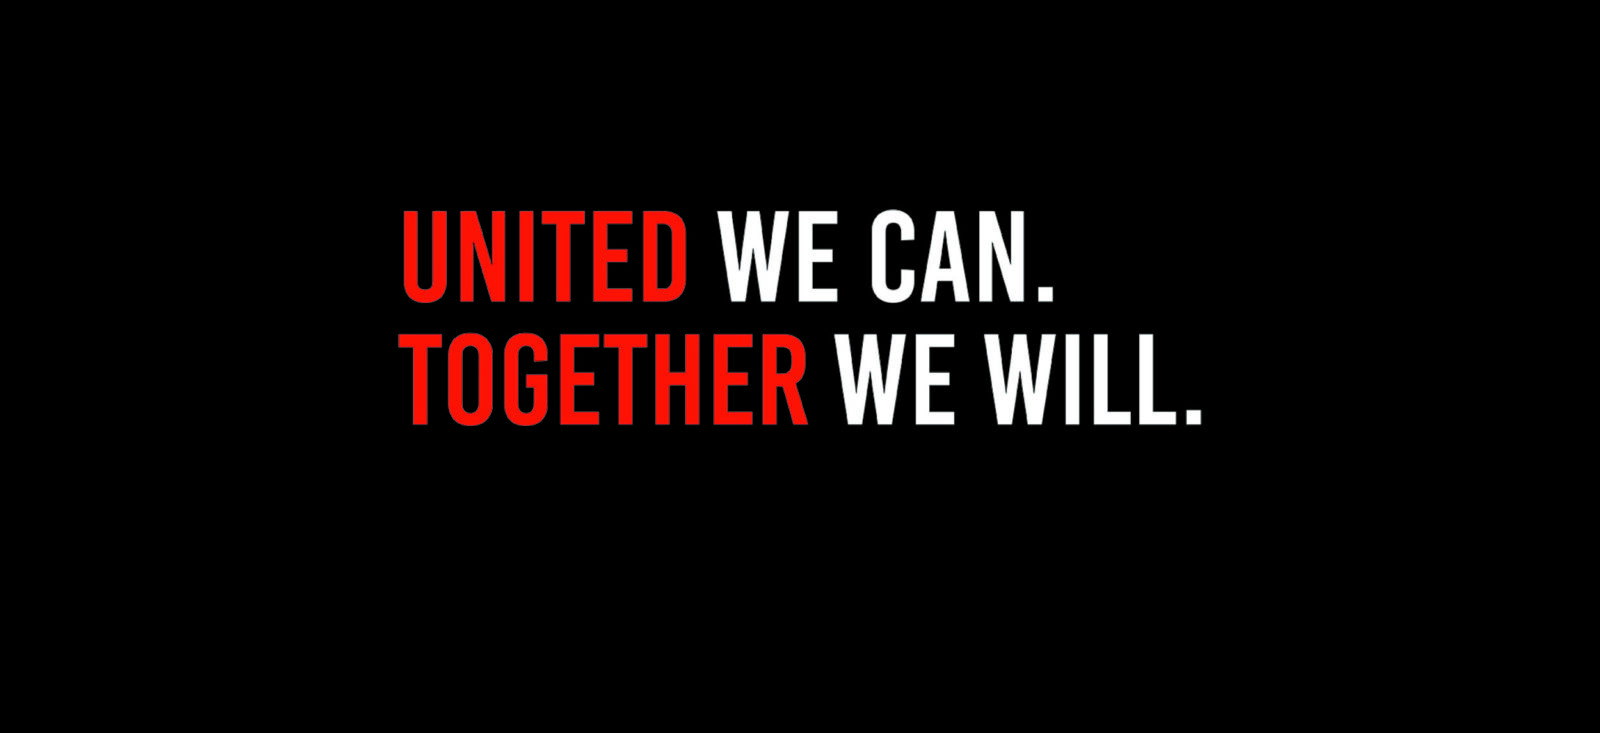 Black background with the Bold text United We Can Together We Will